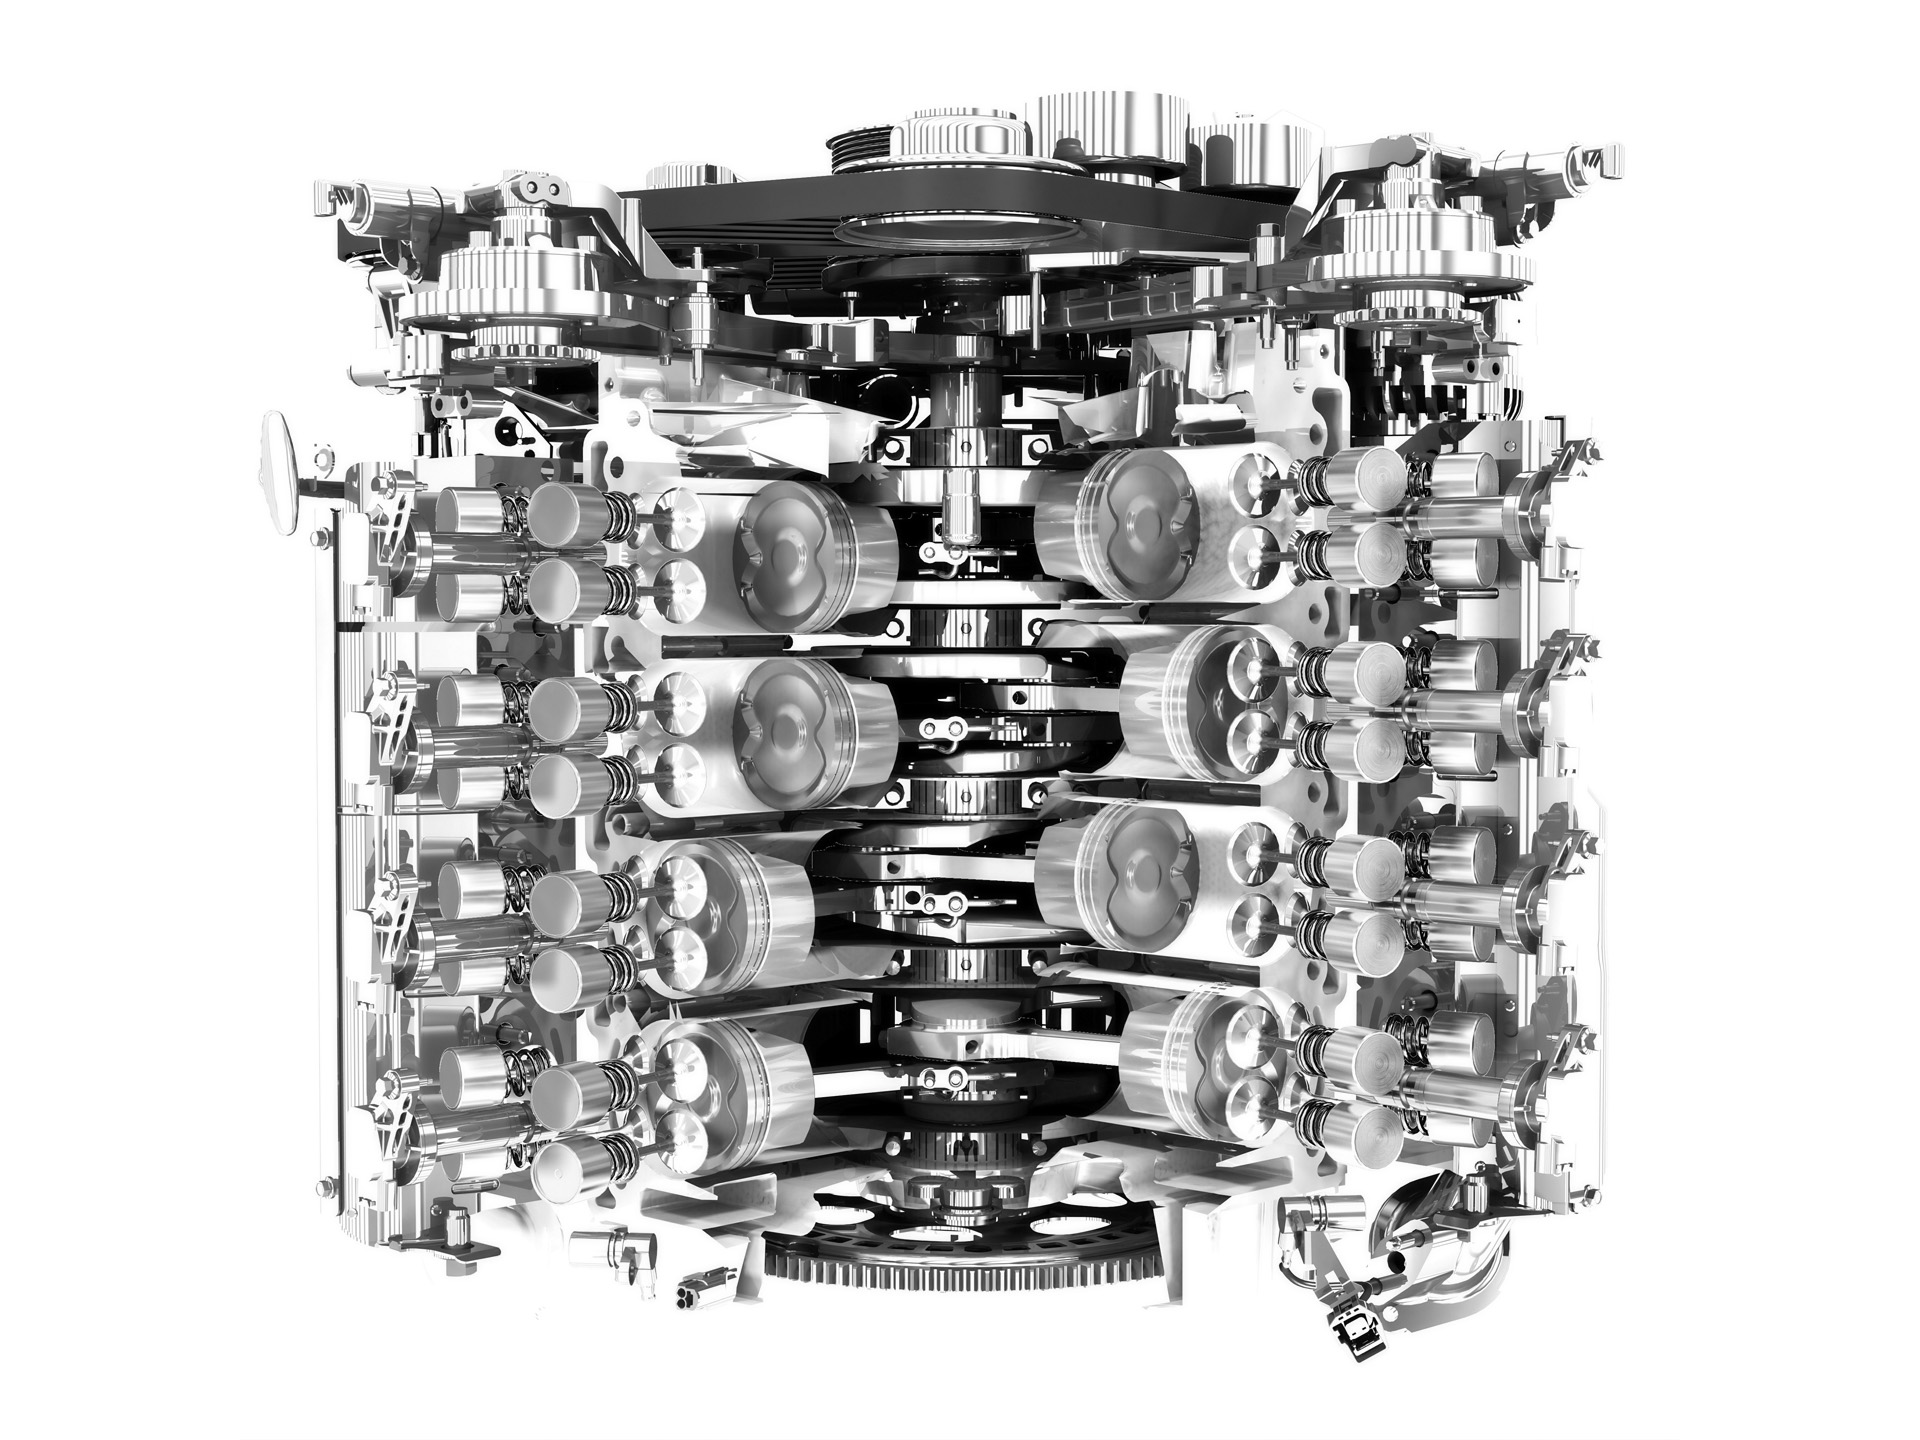 Sample P0481 Engine